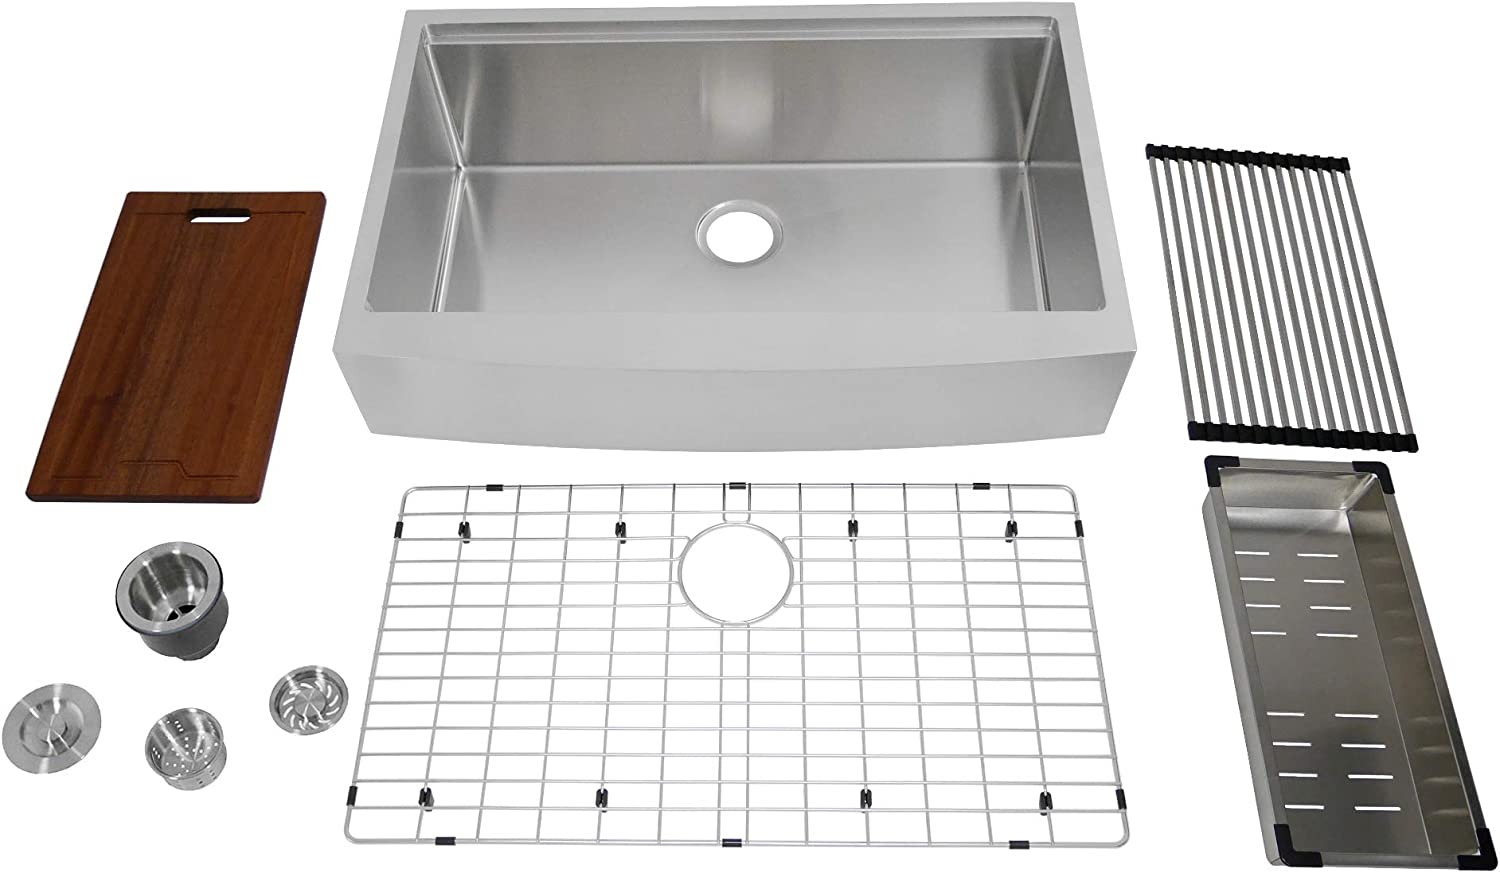 Auric 33 Inch Retro Fit Curved Apron Front Workstation Farmhouse Kitchen Sink 16 Gauge Stainless Steel Short Apron Single Bowl Scal 16 33 Retro Sgl Combo